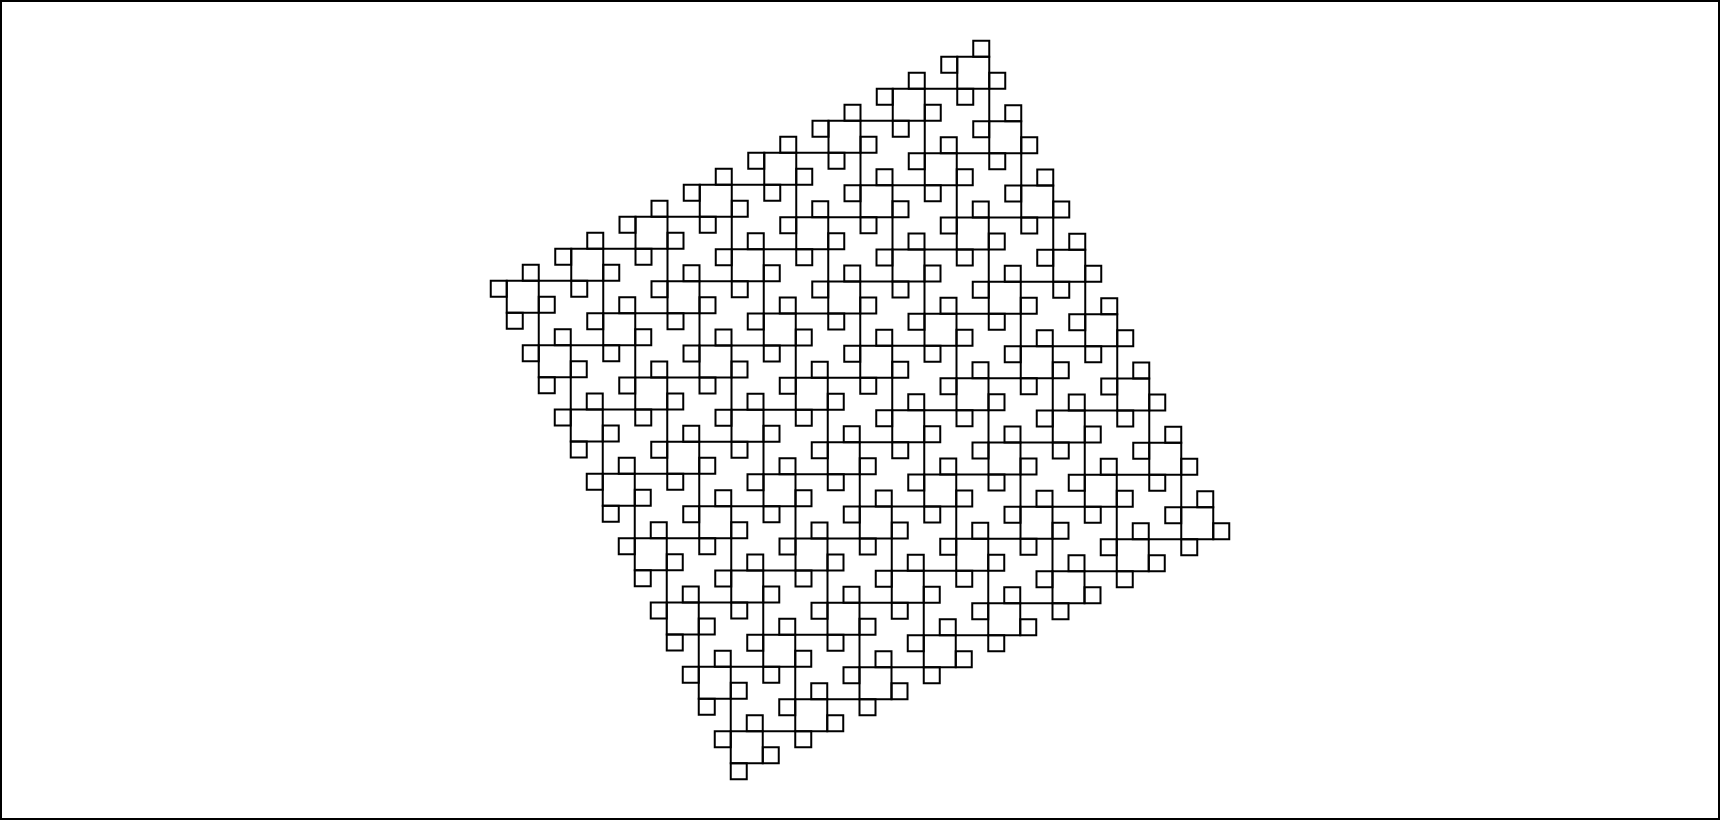 Illustration of recursively drawn smaller squares as demonstrated in python parameterized code above